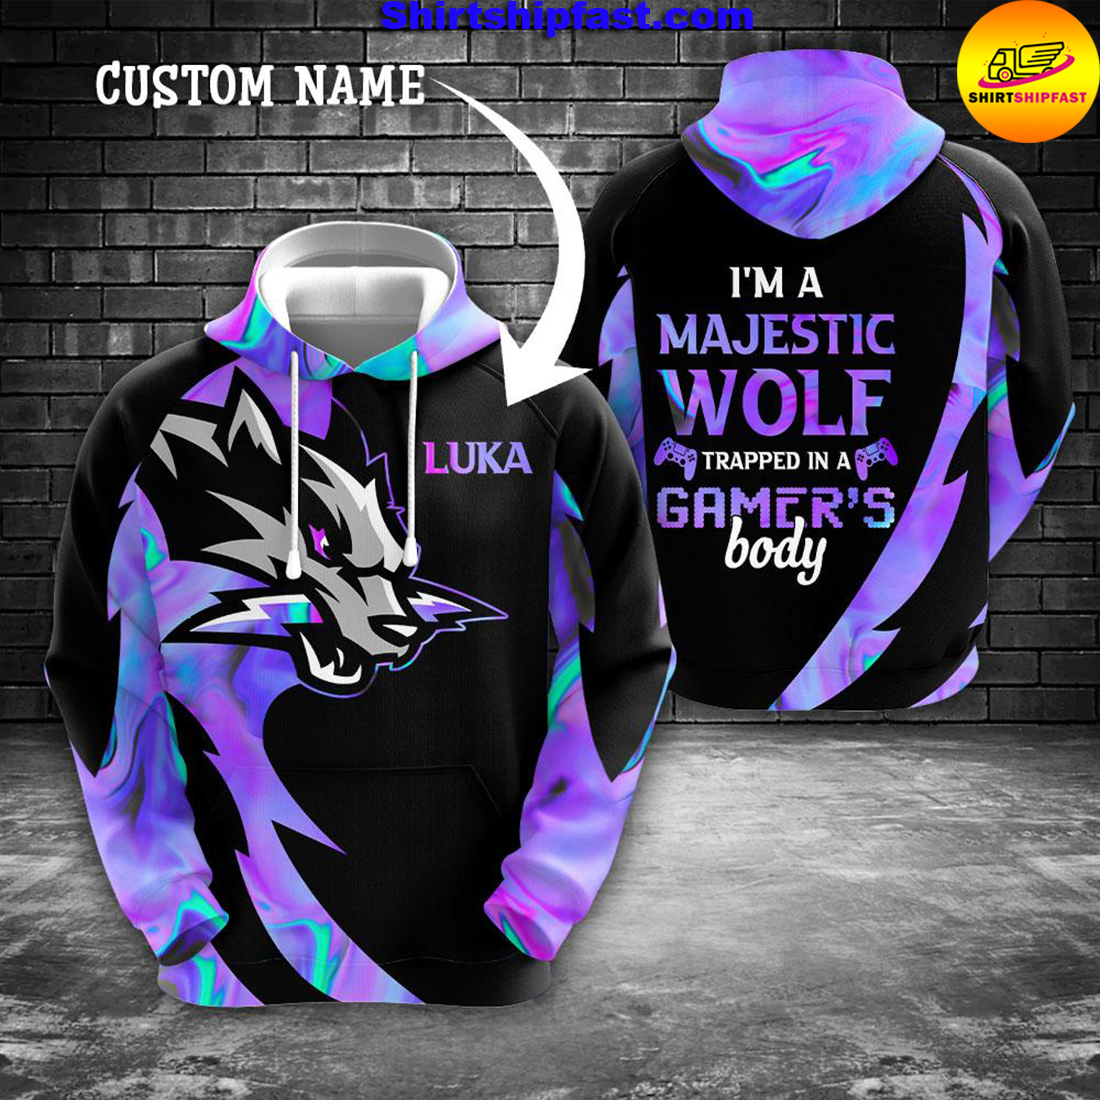 Gaming I'm a majestic wolf trapped in a gamer's body custom name 3d hoodie and zip hoodie